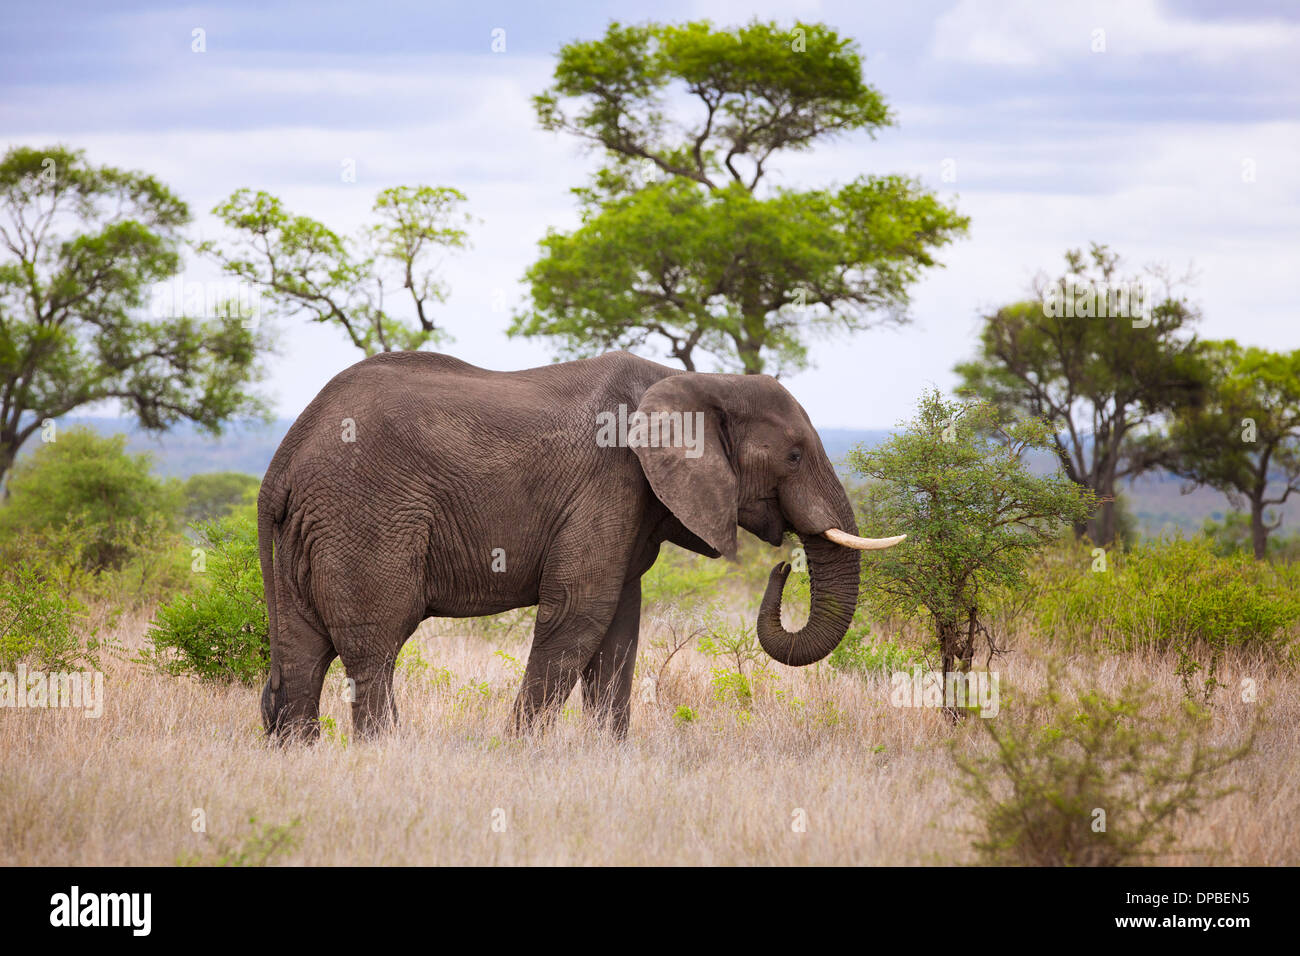 A Bull Elephant ( Loxodonta africana ) grazing in Kruger National Park, South Africa. - Stock Image